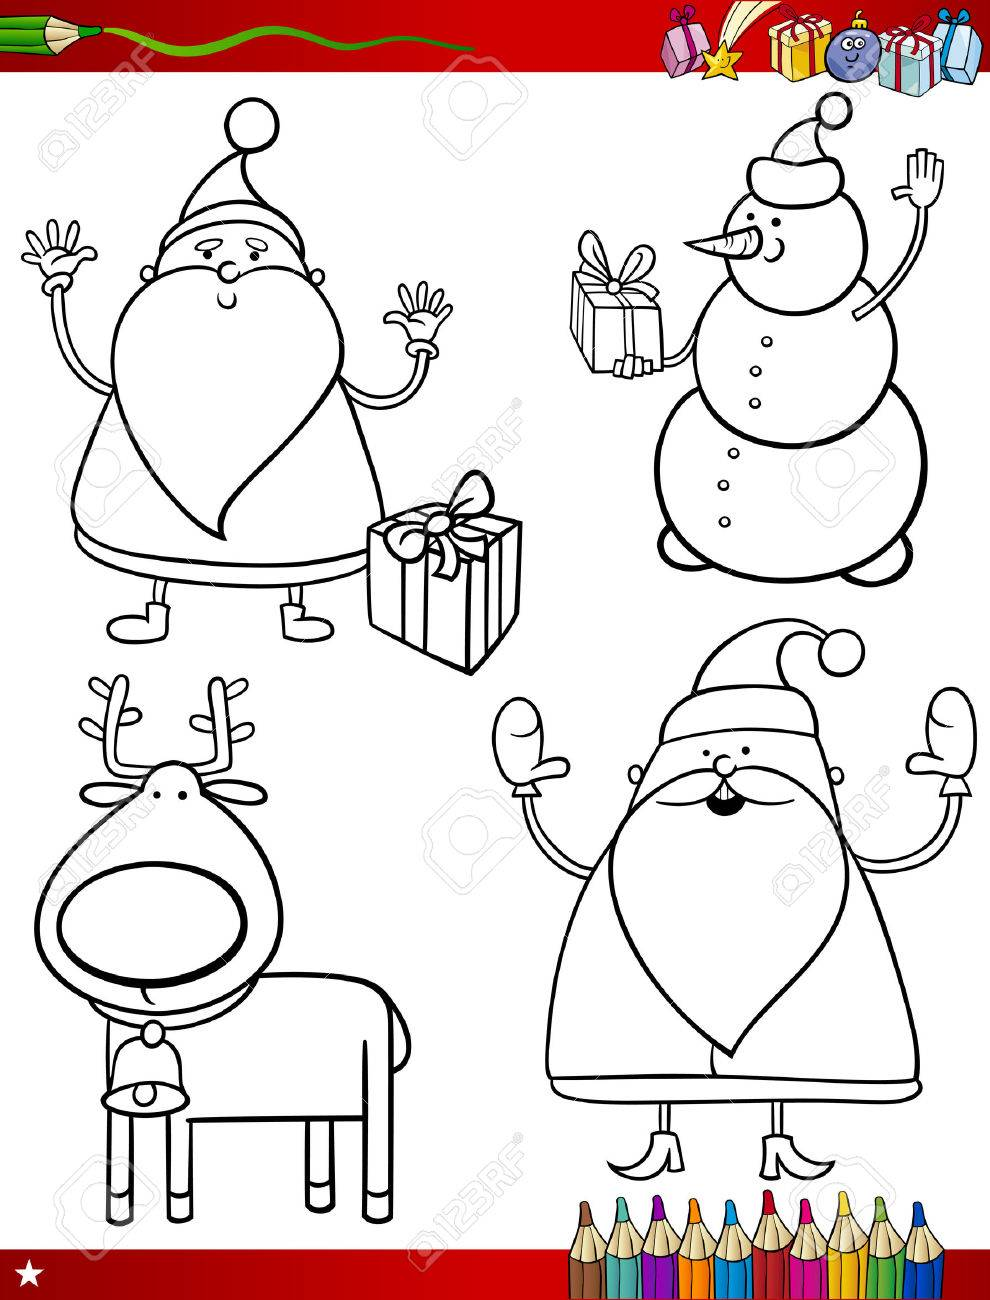 414 gifts for kids stock vector illustration and royalty free